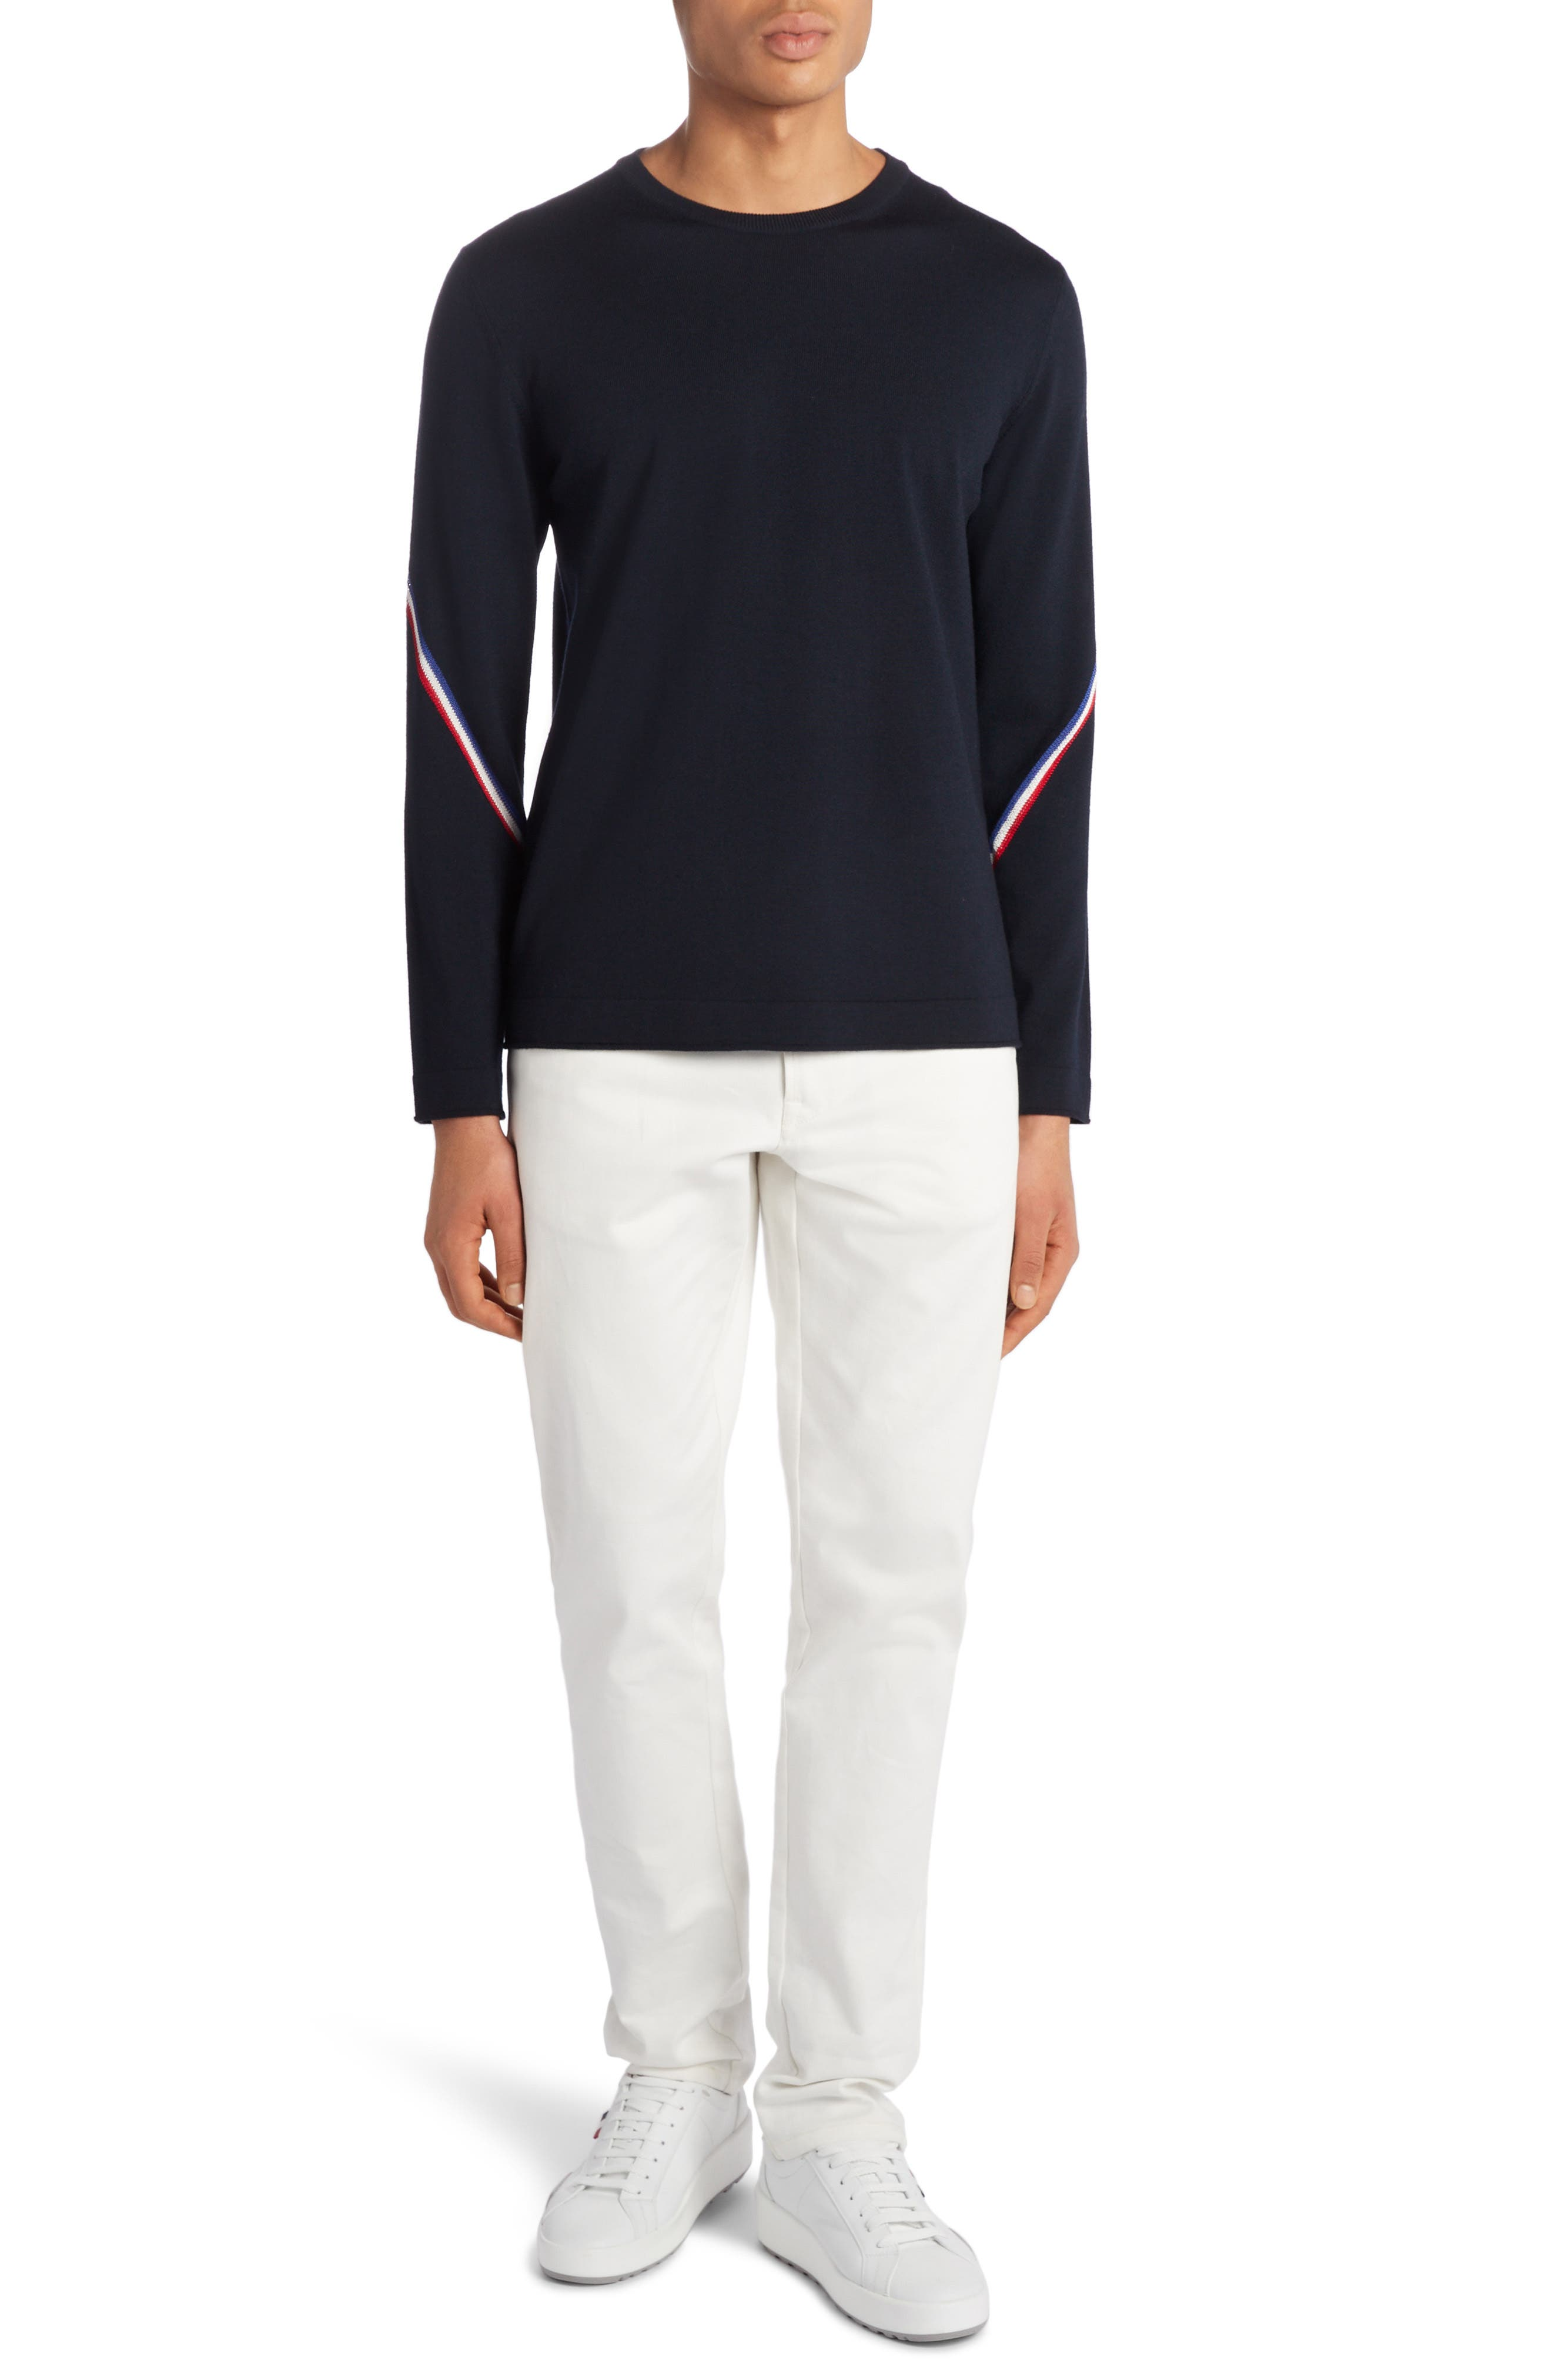 Bands of signature French tricolors angle up the sleeves of a lightweight crewneck sweater styled in a fit that layers easily and looks smart on its own. Style Name: Moncler Crewneck Sweater. Style Number: 6064947. Available in stores.